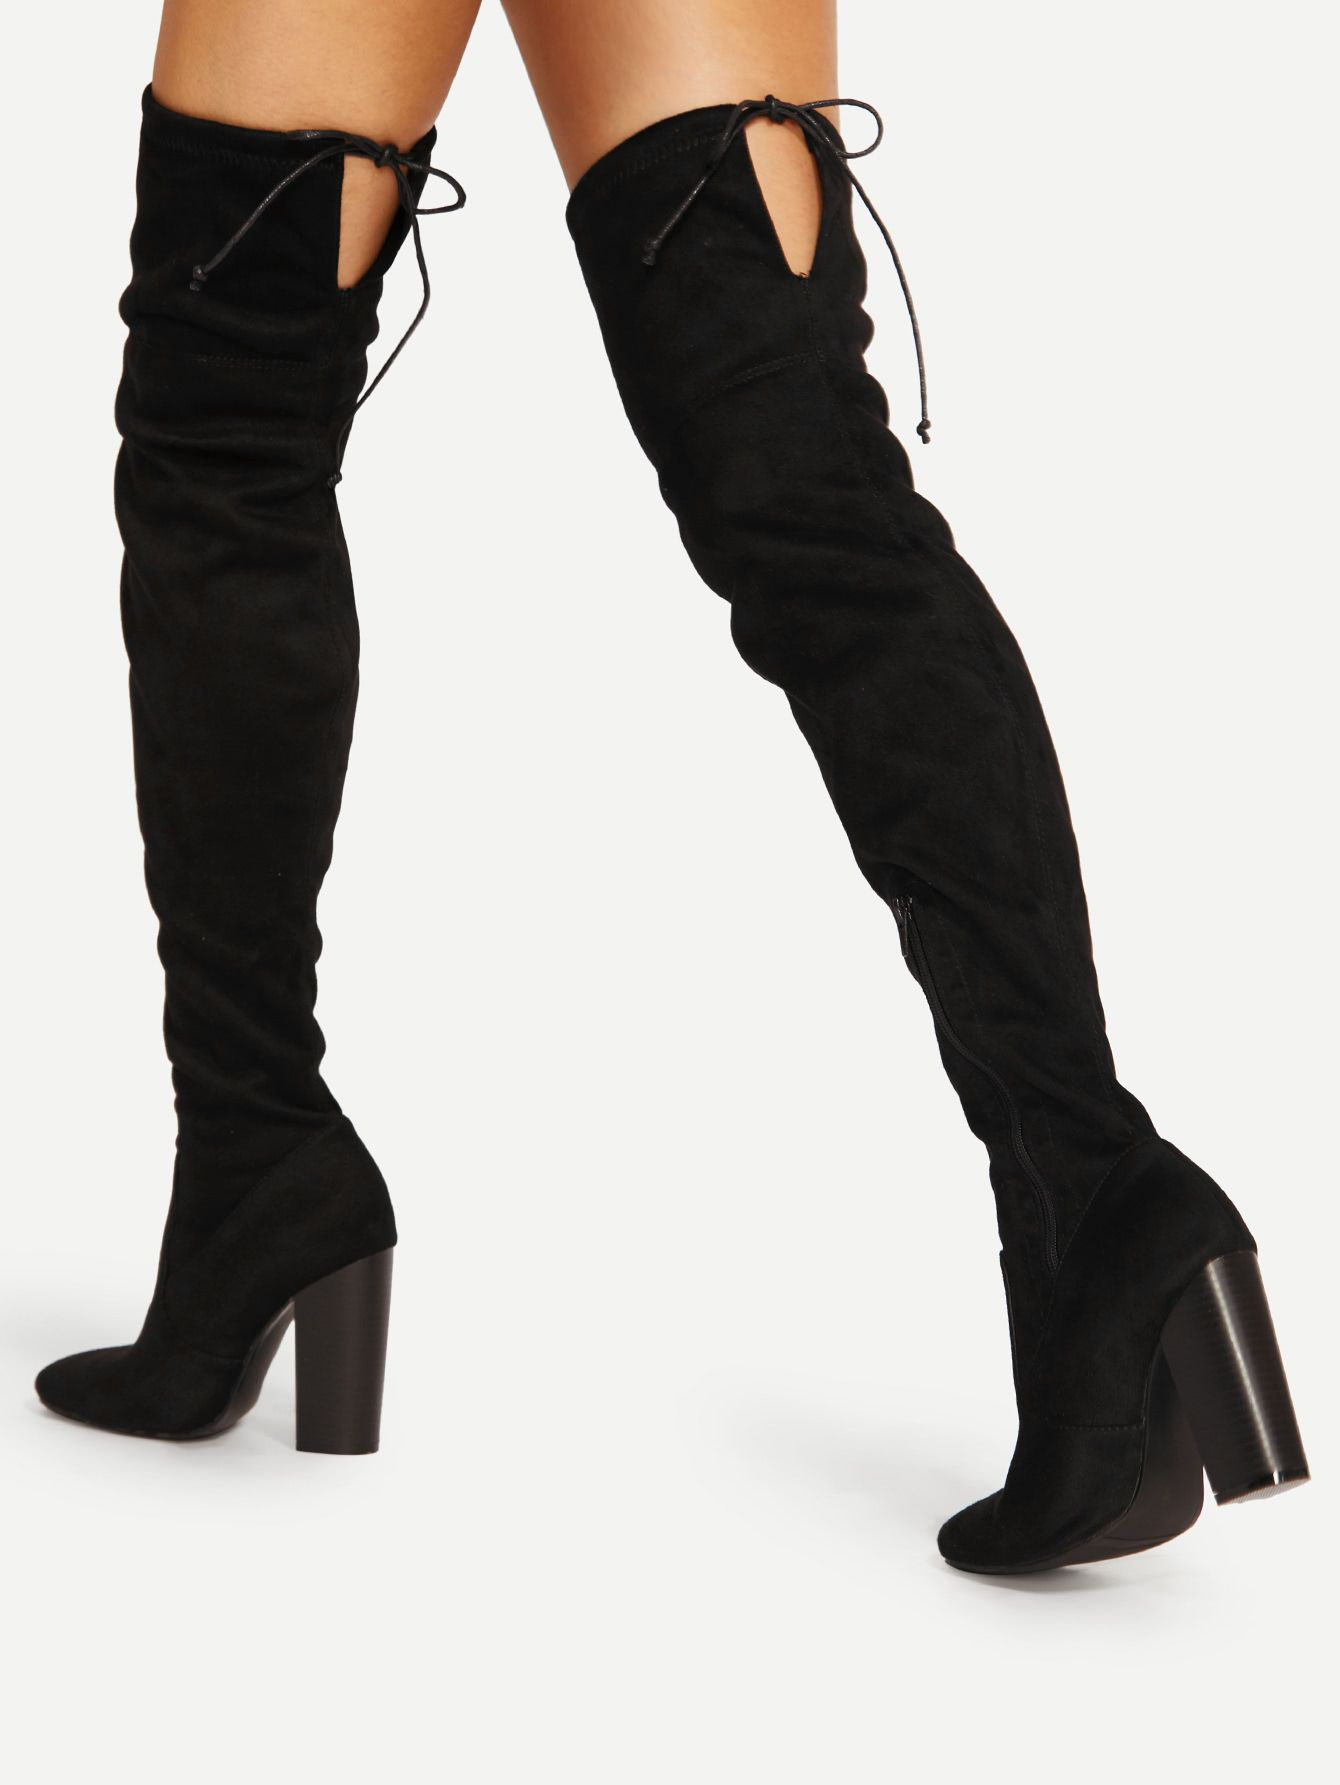 a0e9a35dced Shop Lace Up Detail Block Heeled Thigh High Boots online. SheIn offers Lace  Up Detail Block Heeled Thigh High Boots   more to fit your fashionable needs .